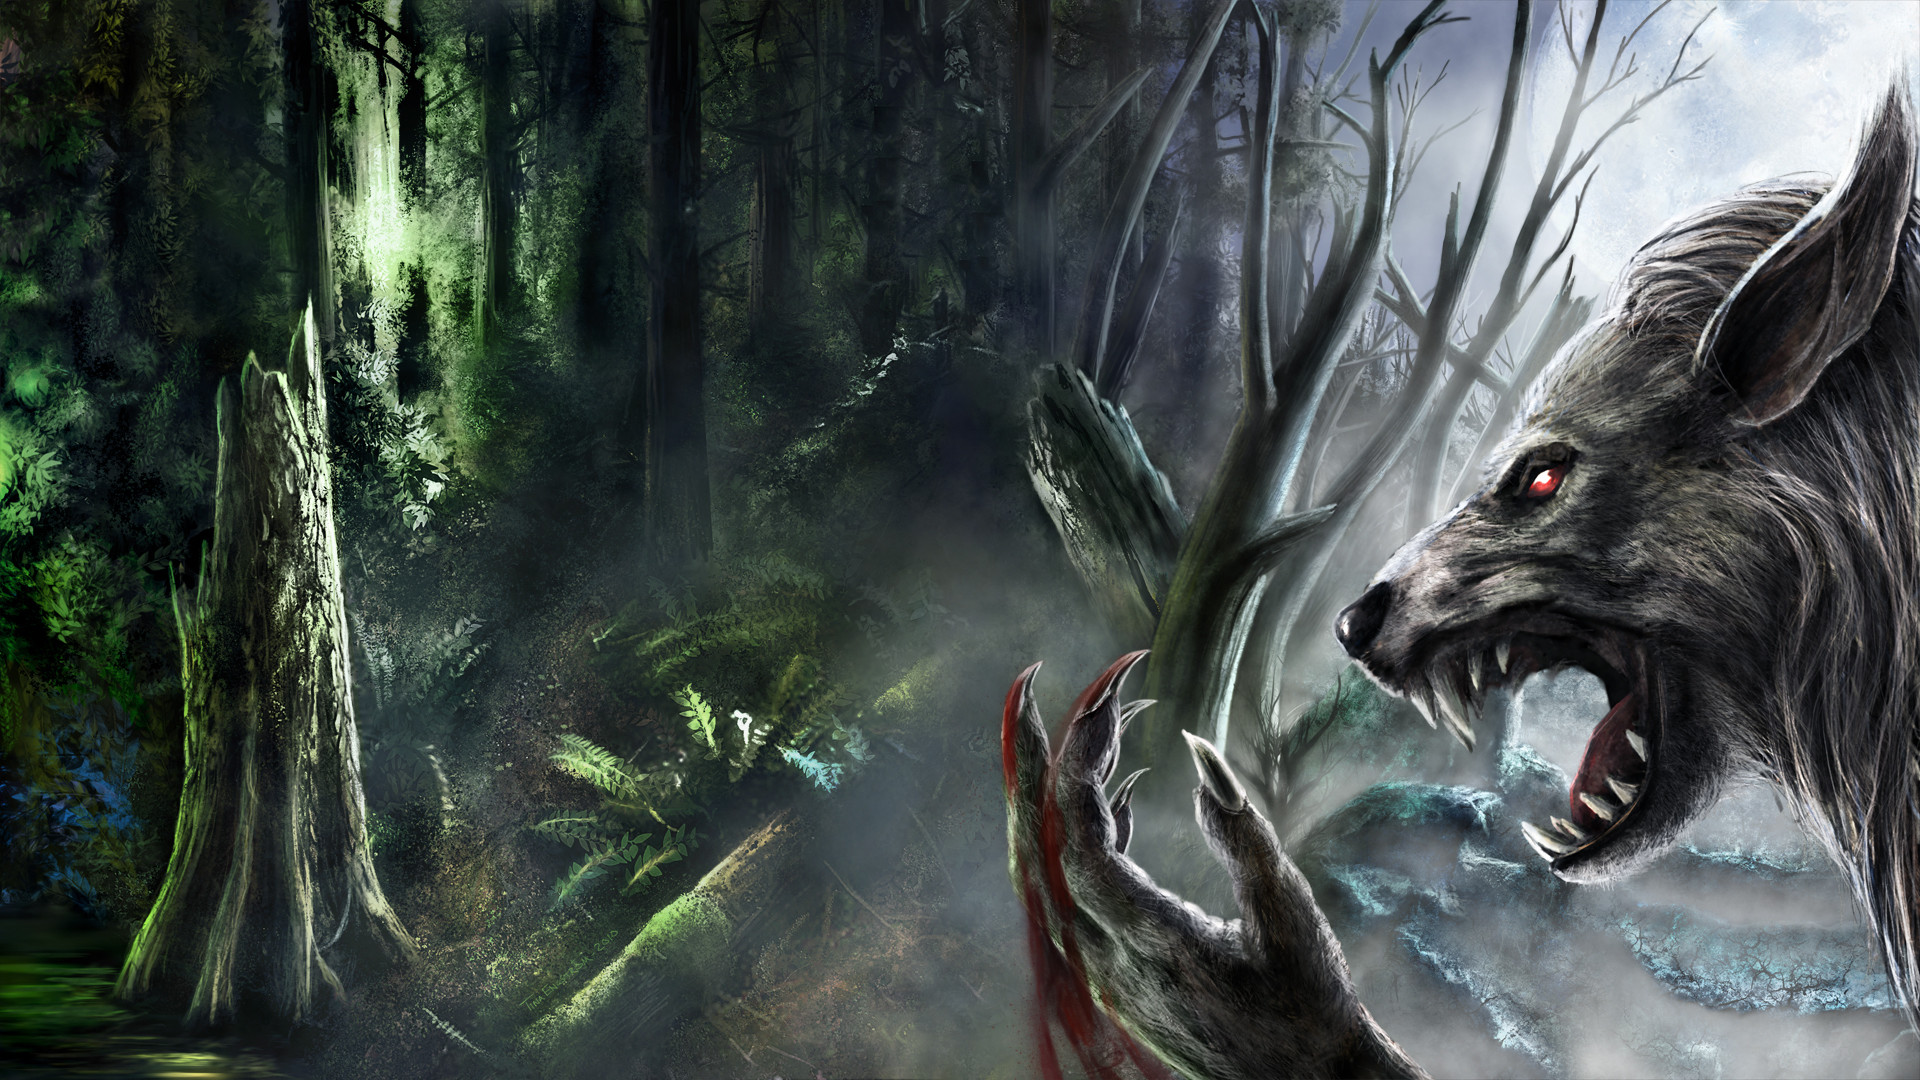 Res: 1920x1080, Werewolf fantasy art dark monster creatures blood fangs trees forest spooky creepy  scary evil wallpaper |  | 41739 | WallpaperUP